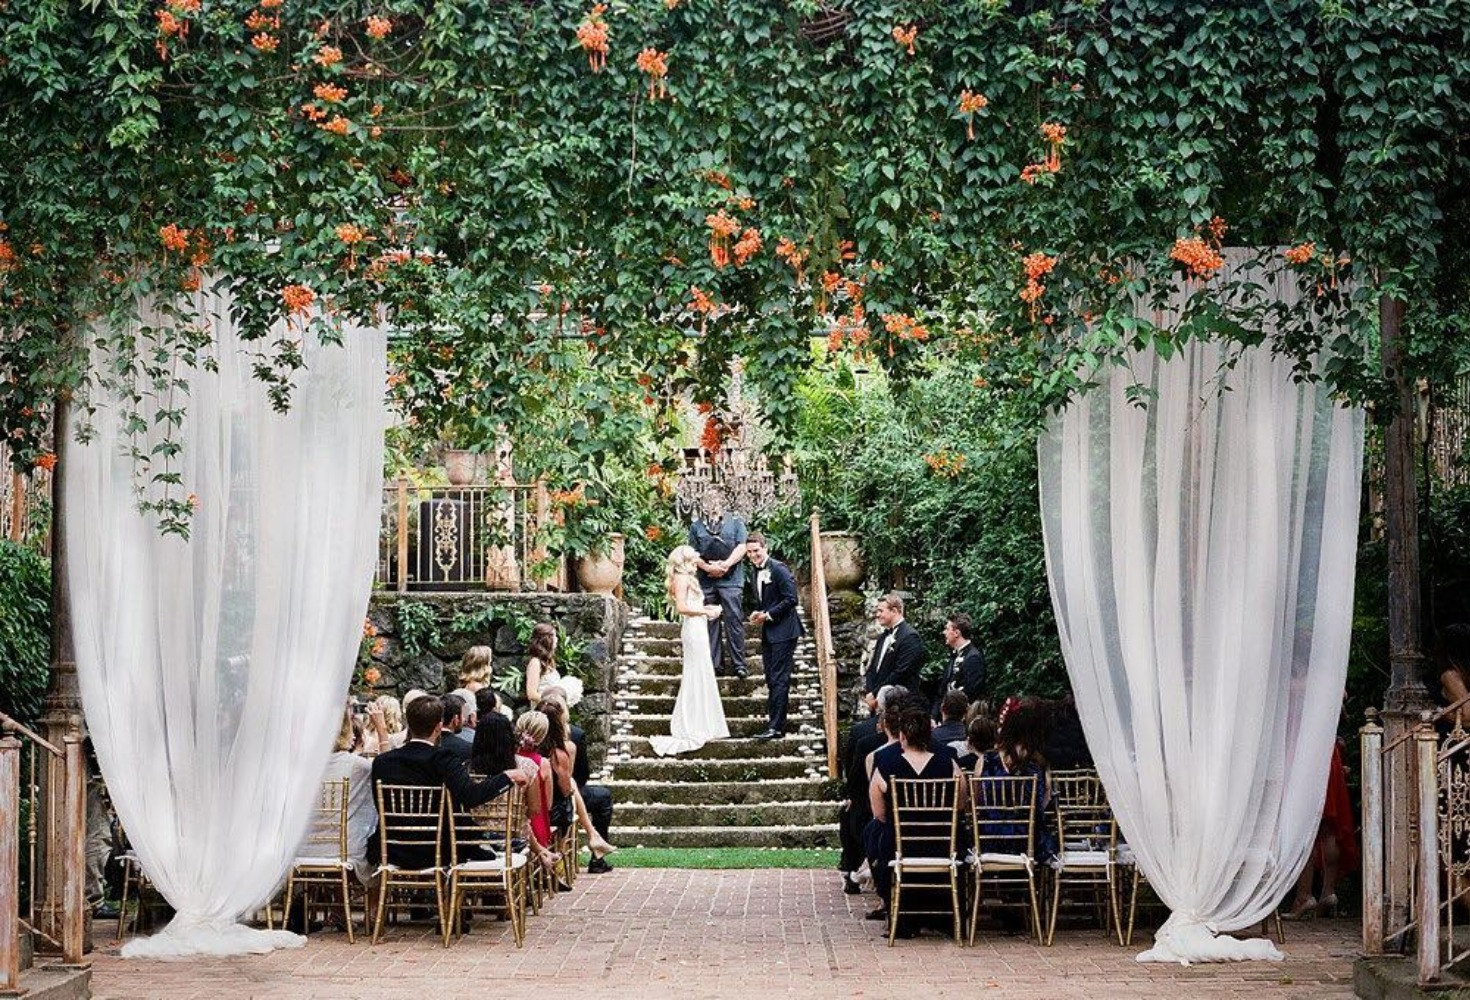 10 Venues That'll Make You Want to Ditch Your OG 'I Do' Plan